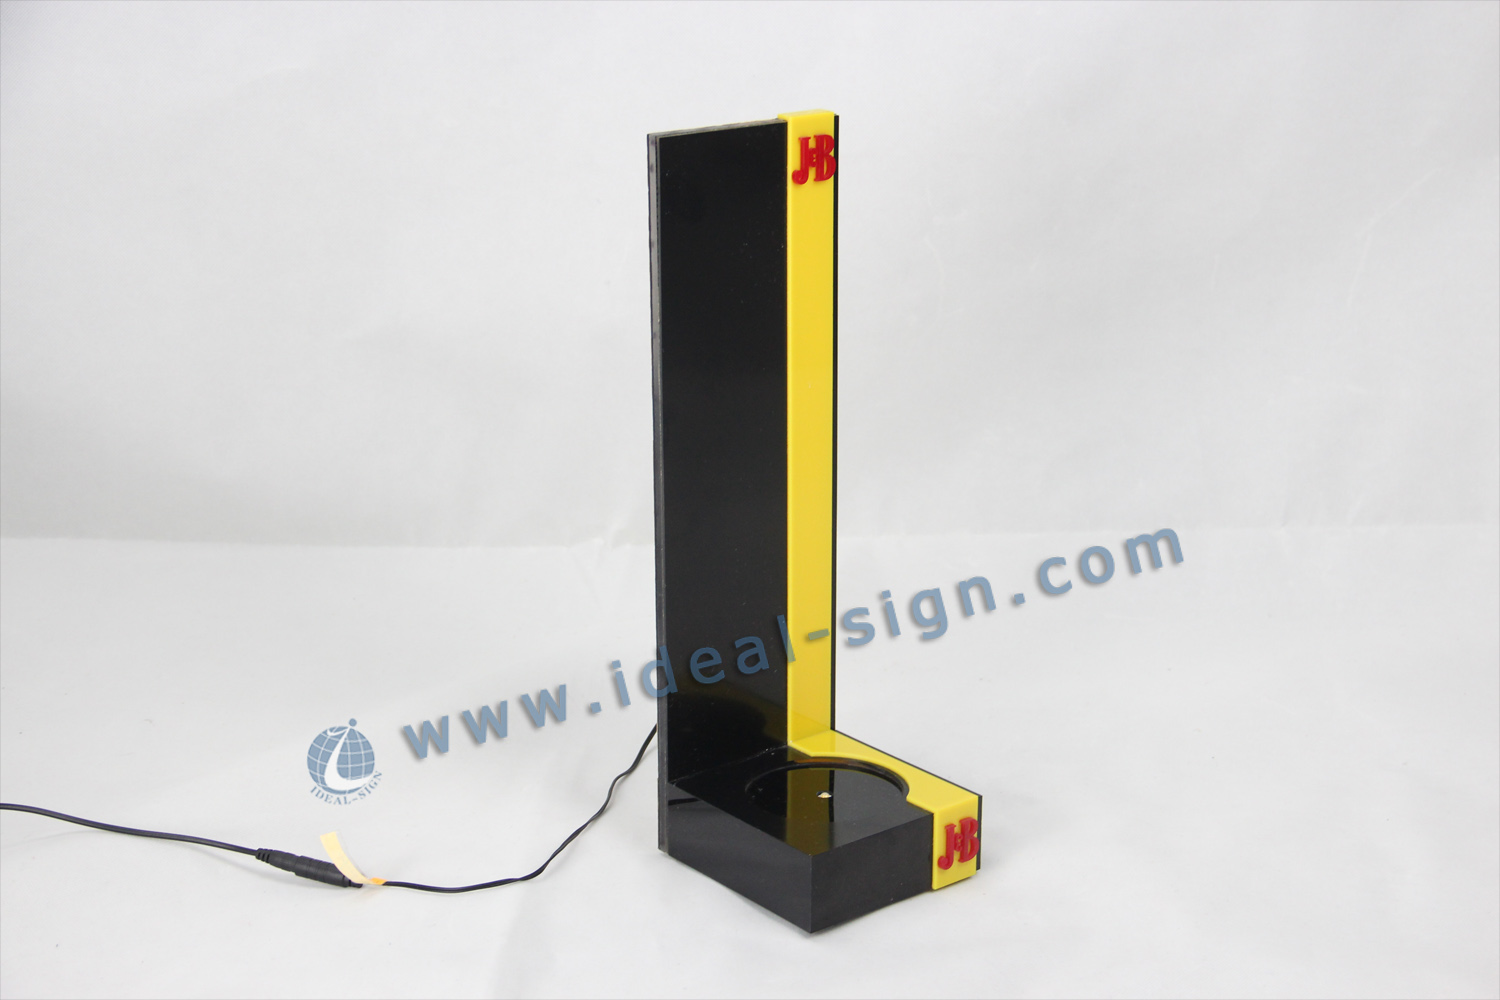 JB LED Liquor Bottle Shelf Display Glorifier